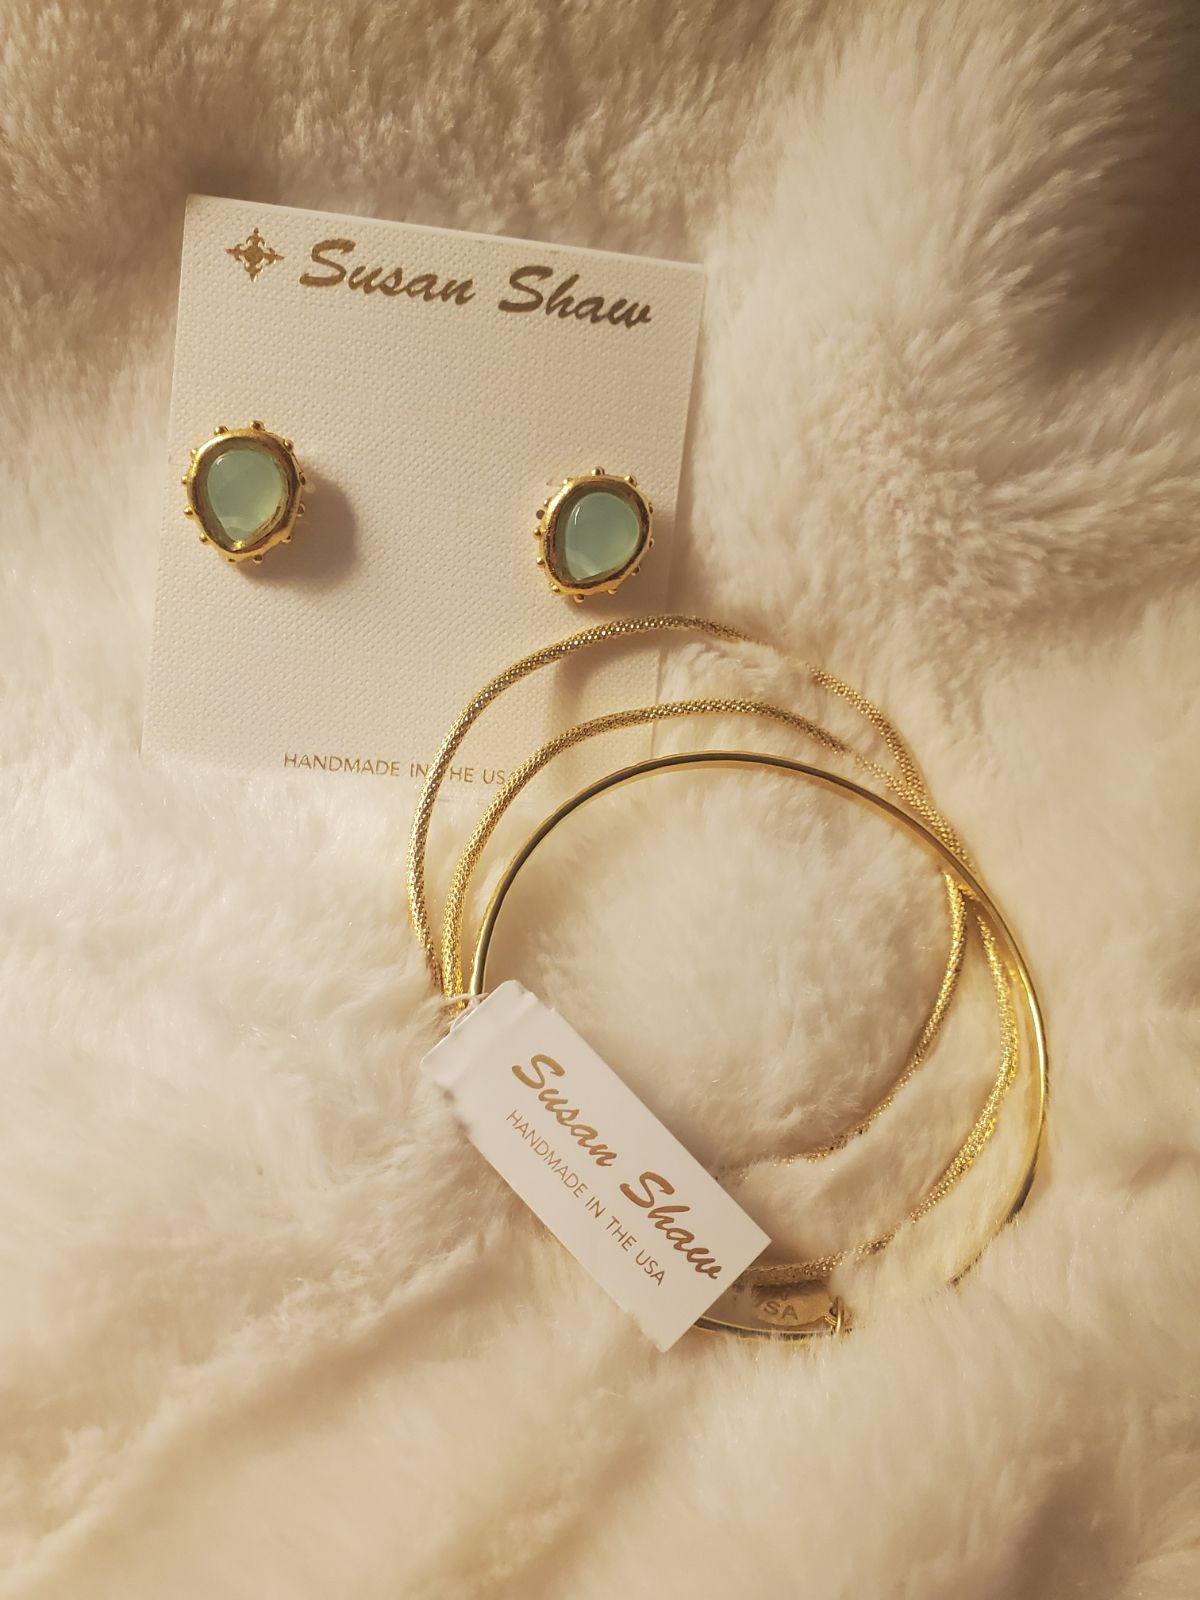 Susan Shaw Earrings + Gold Bangles